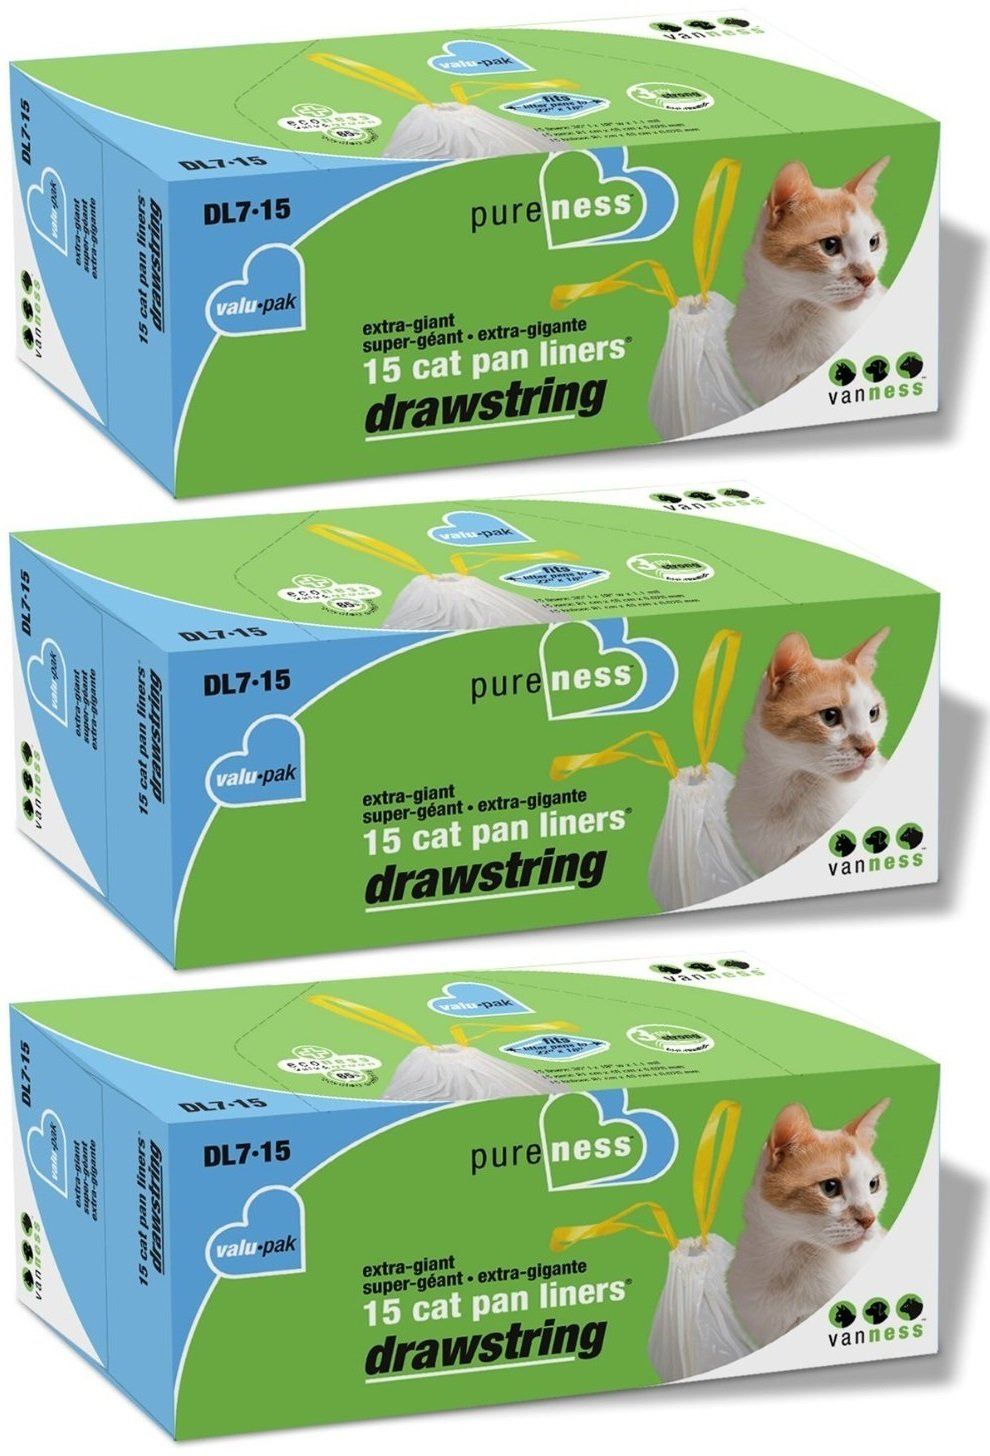 Van Ness DL715 PureNess Extra Giant Drawstring Cat Pan Liner, 45-Count (3 x 15 Count Boxes)